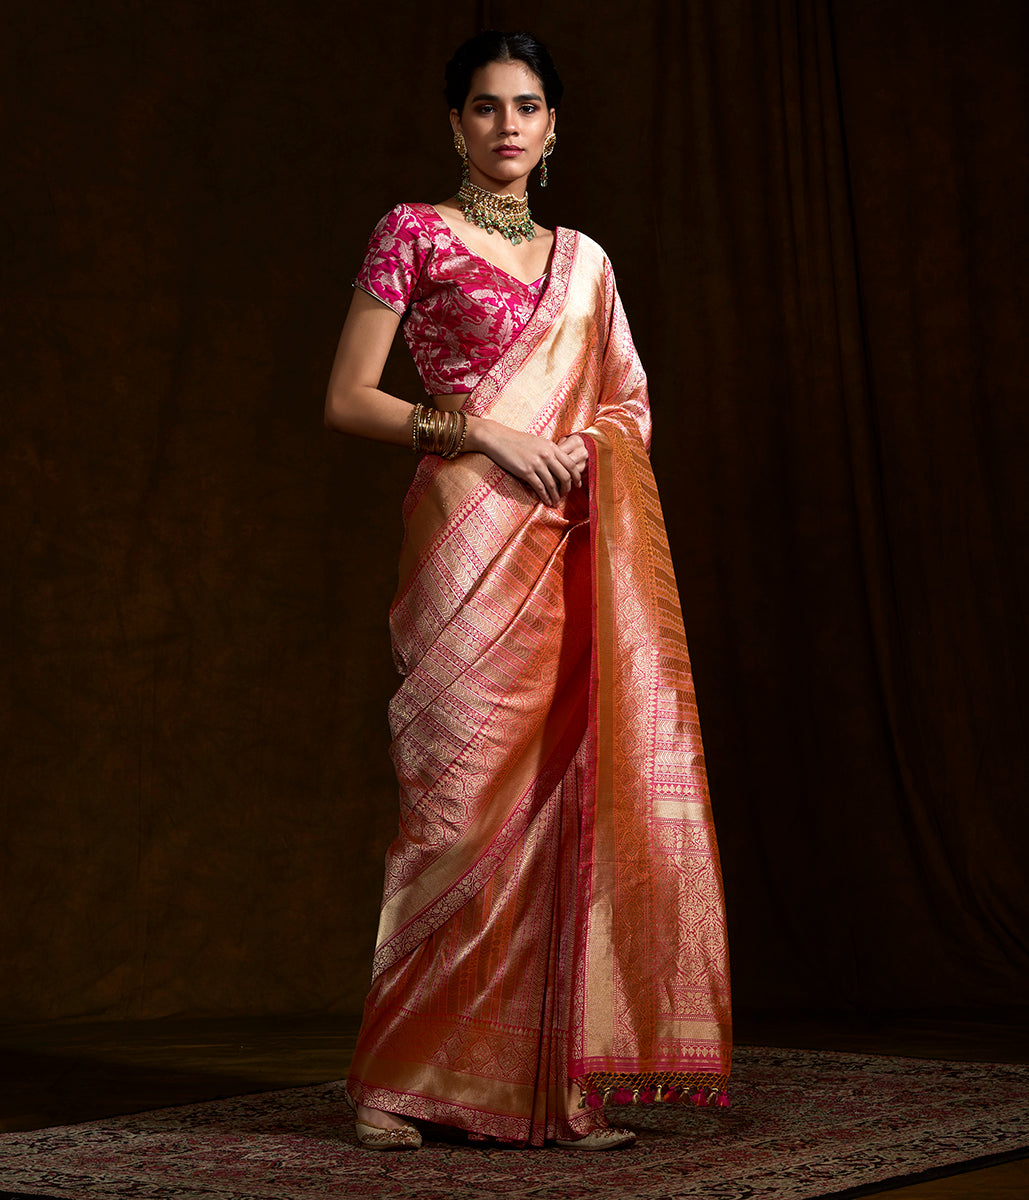 Handwoven Peach banarasi katan silk saree woven in fine kimkhab weave with kadhwa borders and pallu